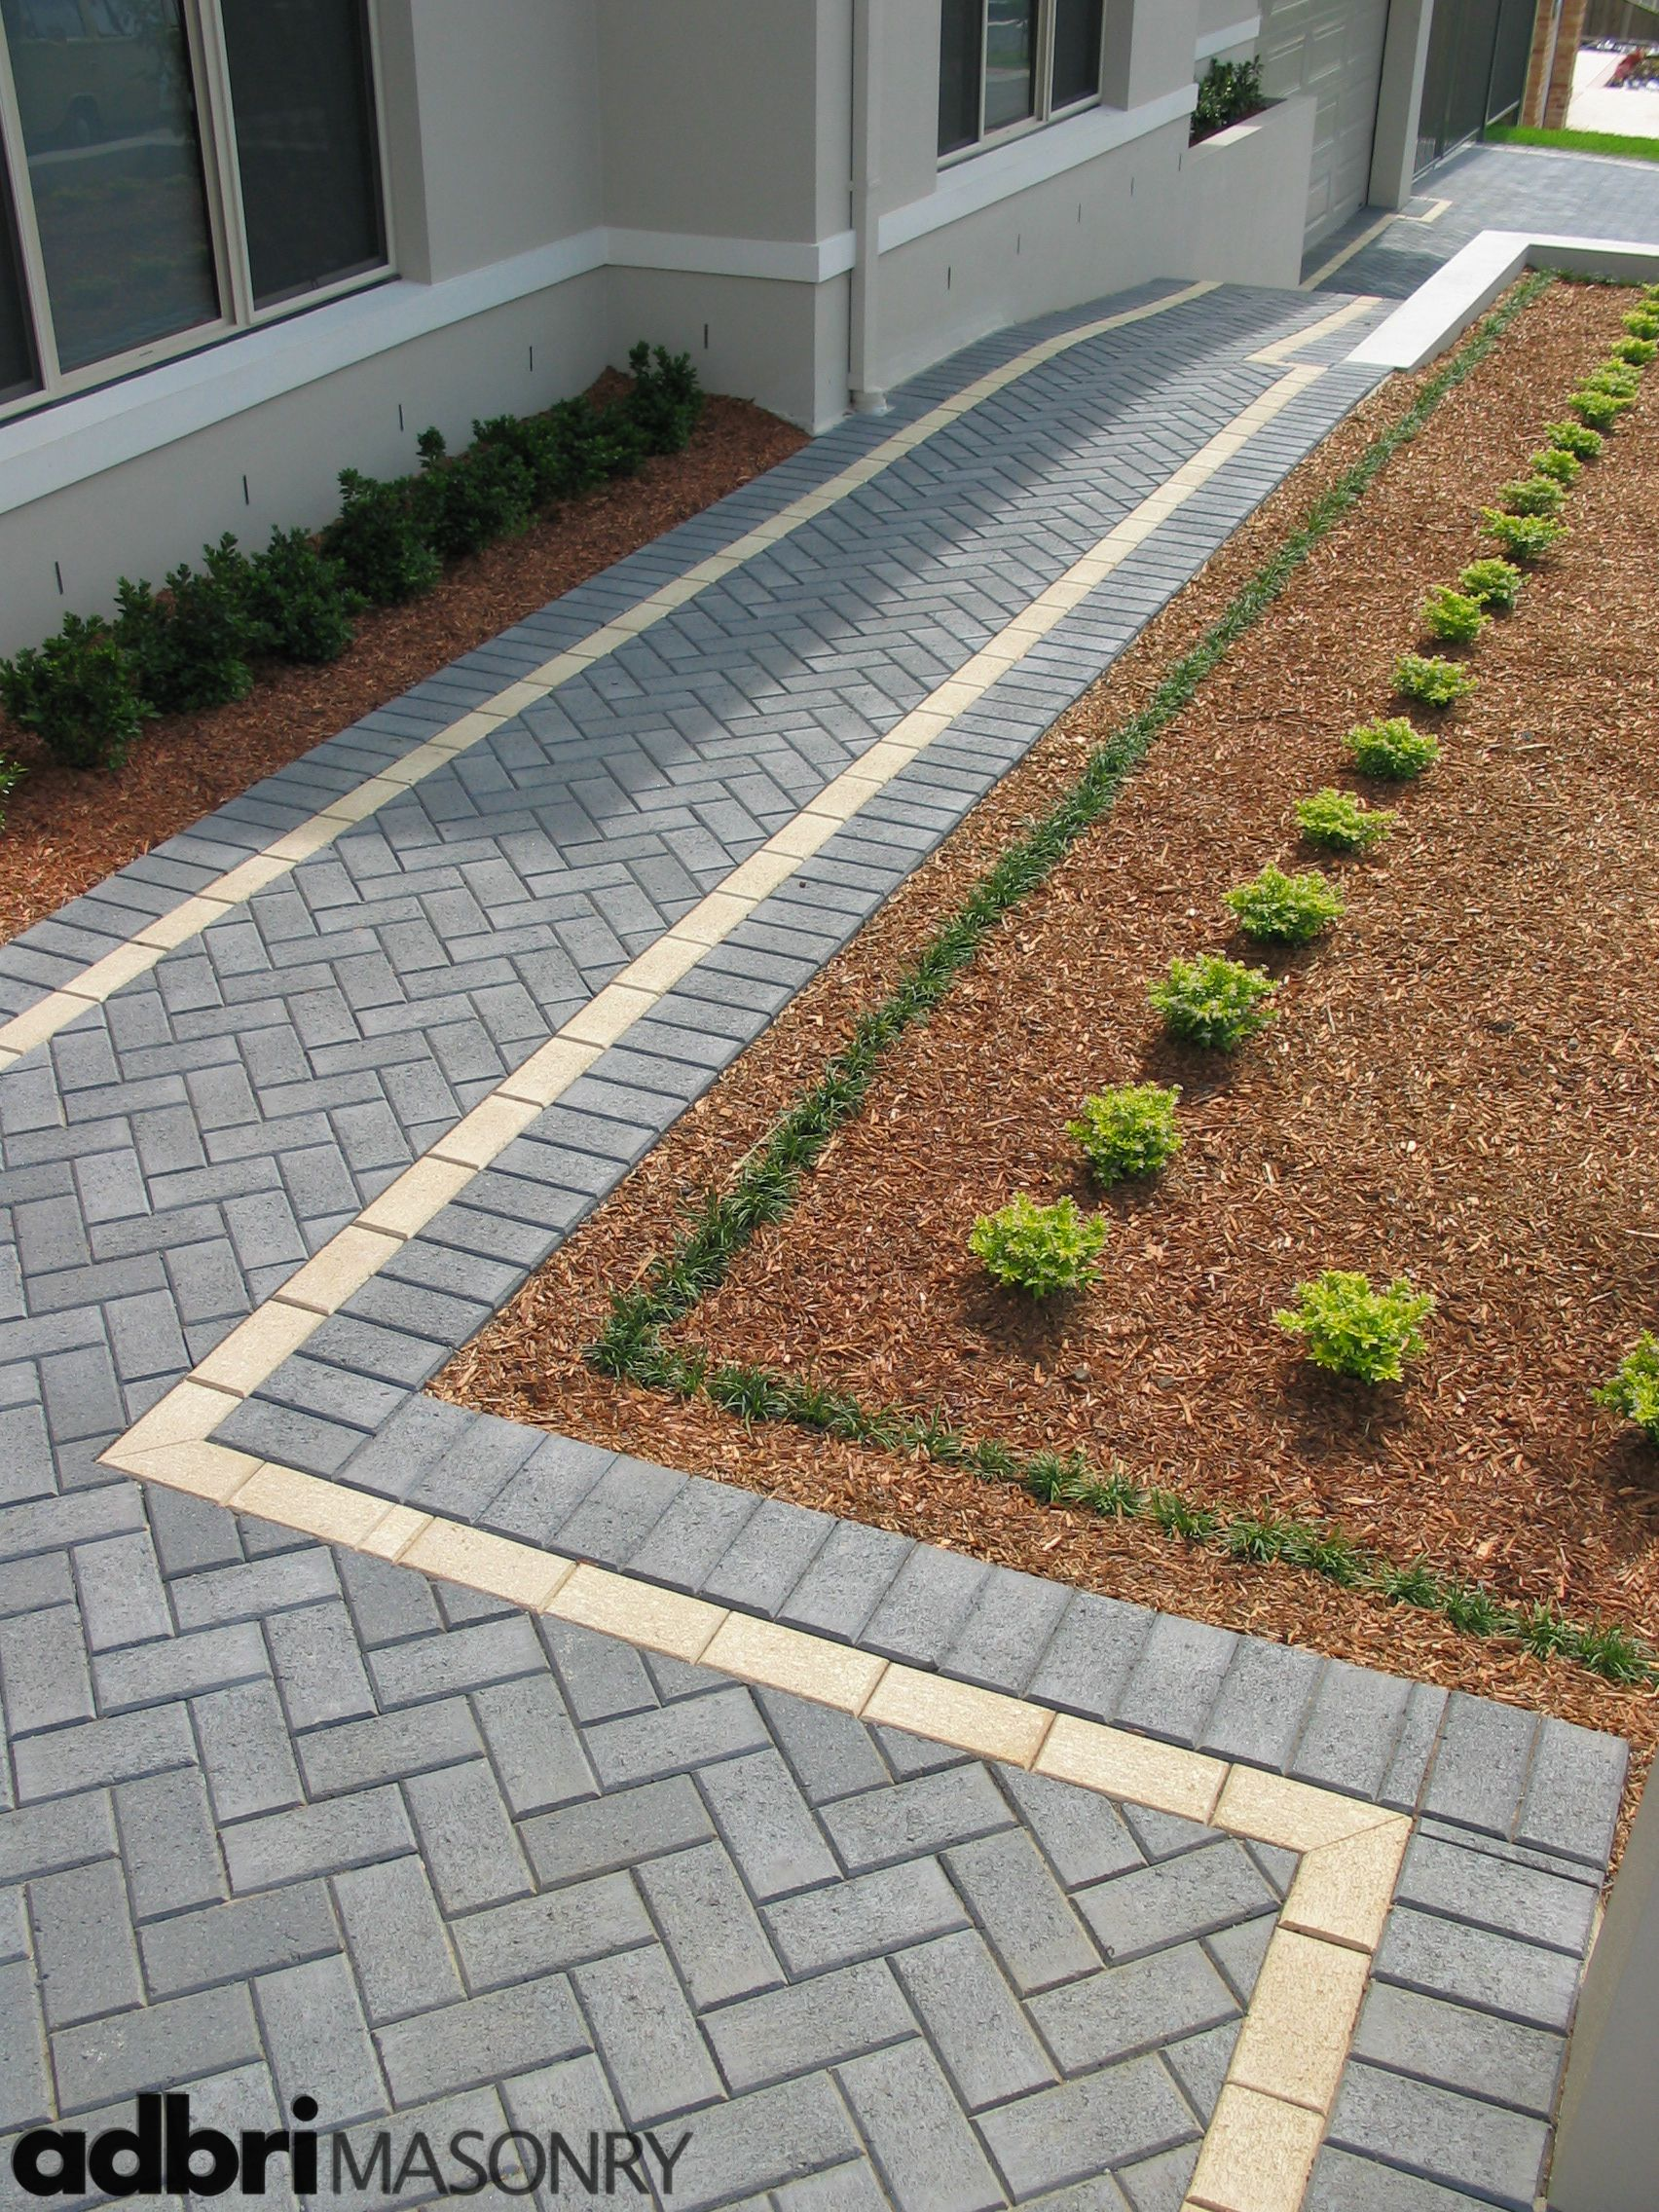 Australian Paving Centre Has A Large Collection Of Australian Pavers